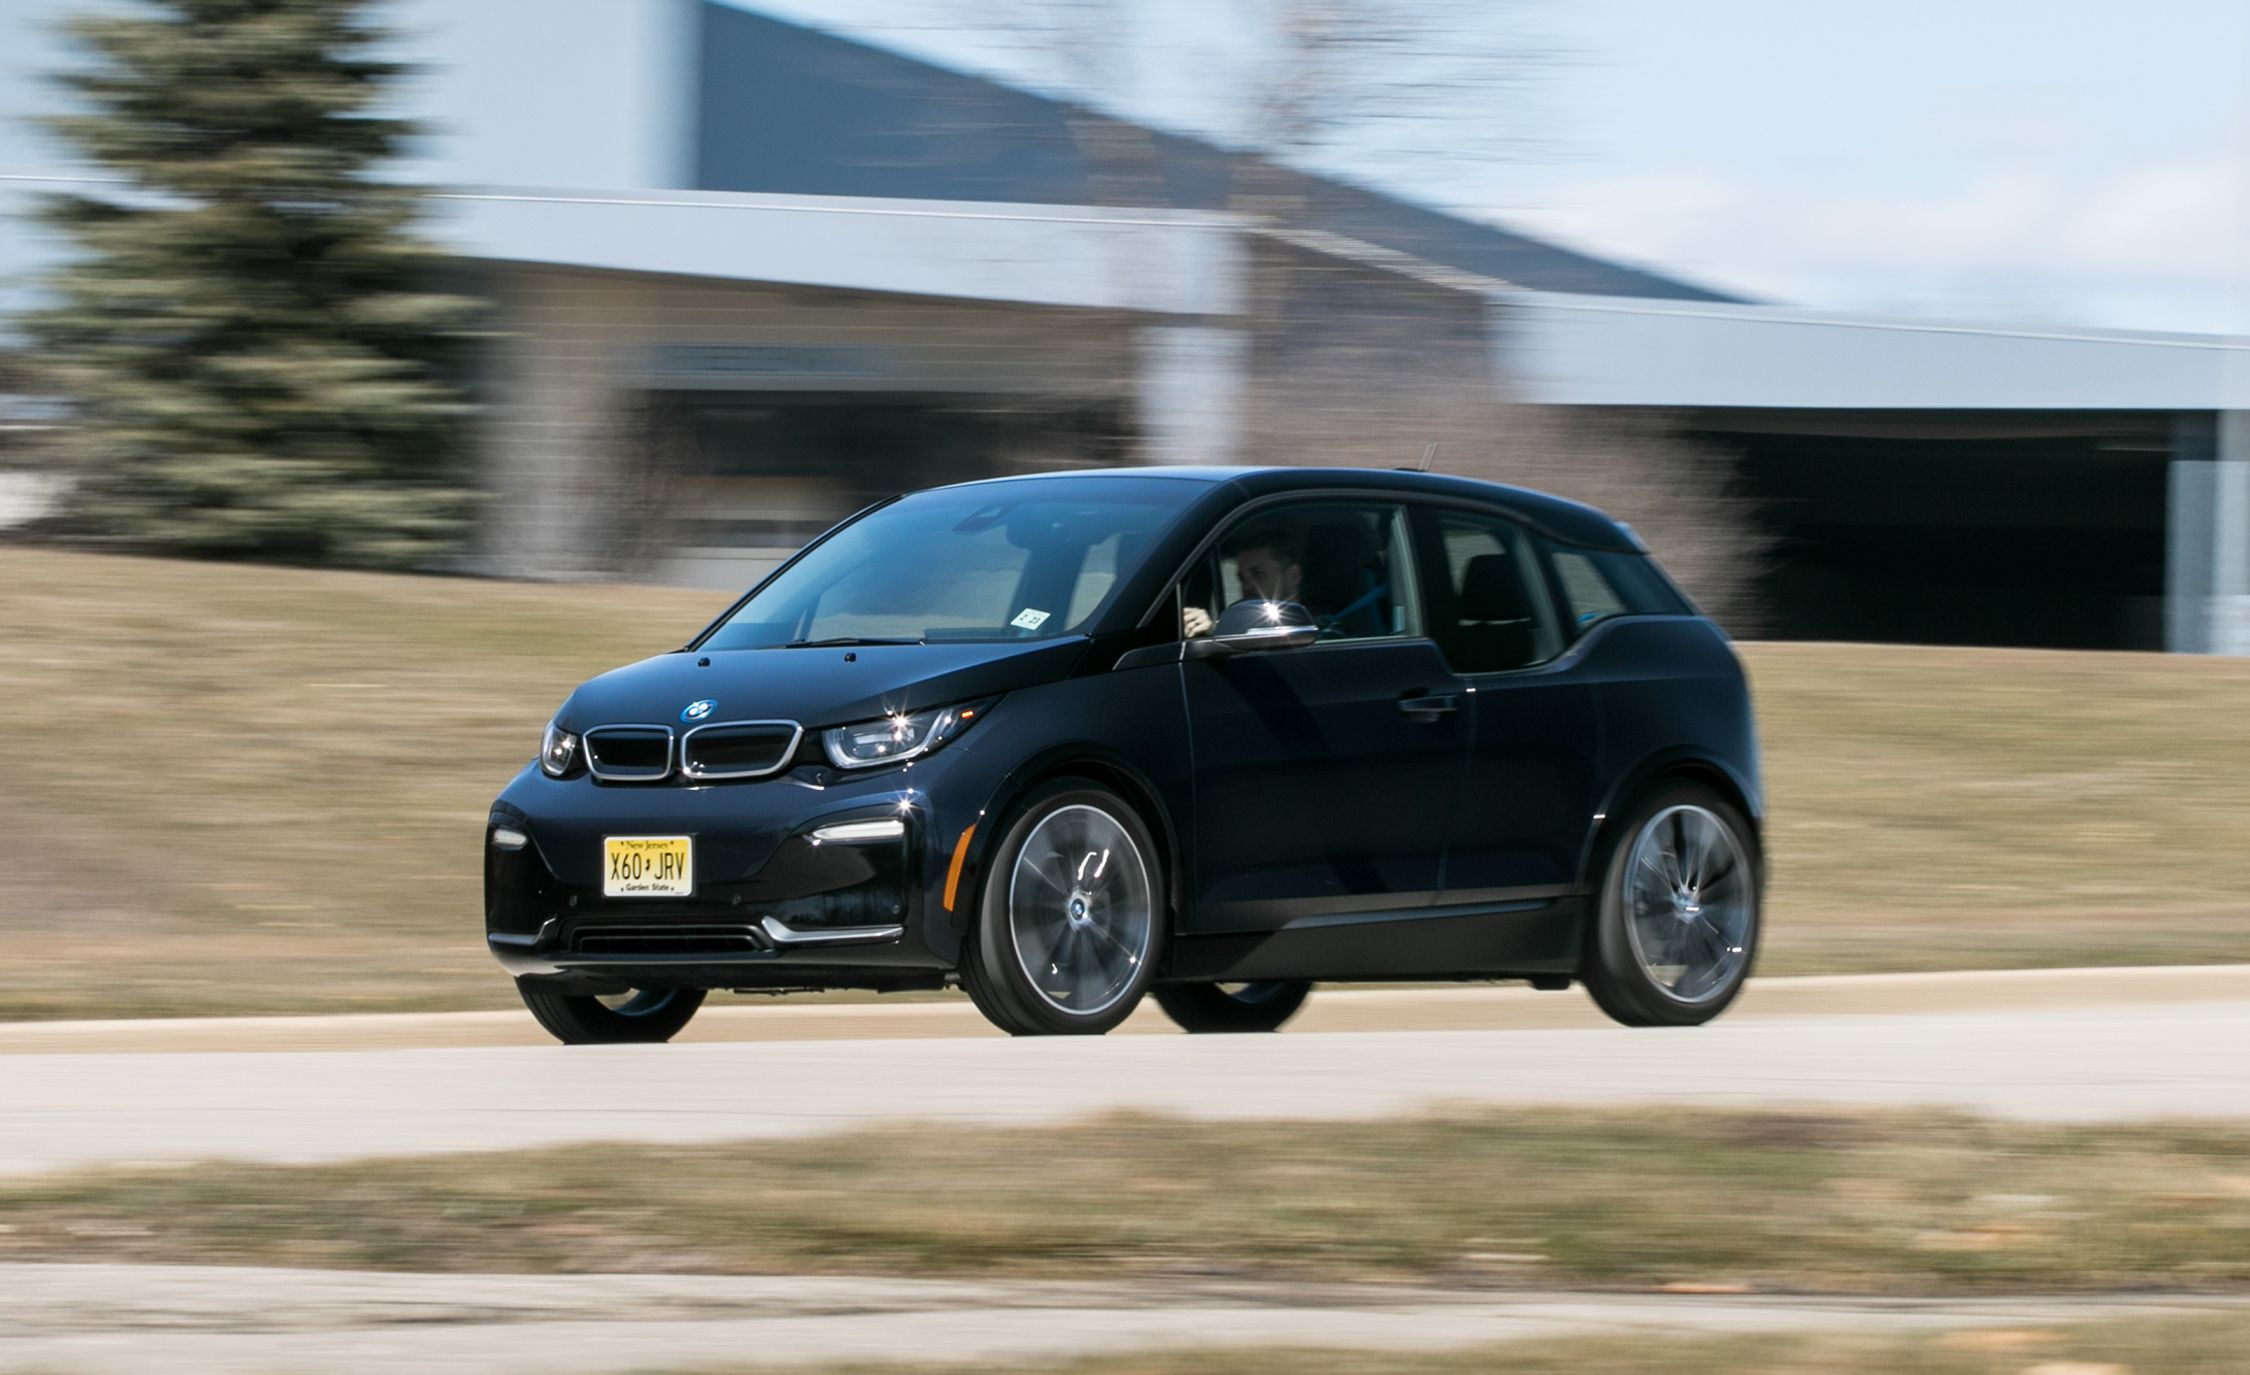 2018 BMW i3s – A Techy EV with a Touch of Sport